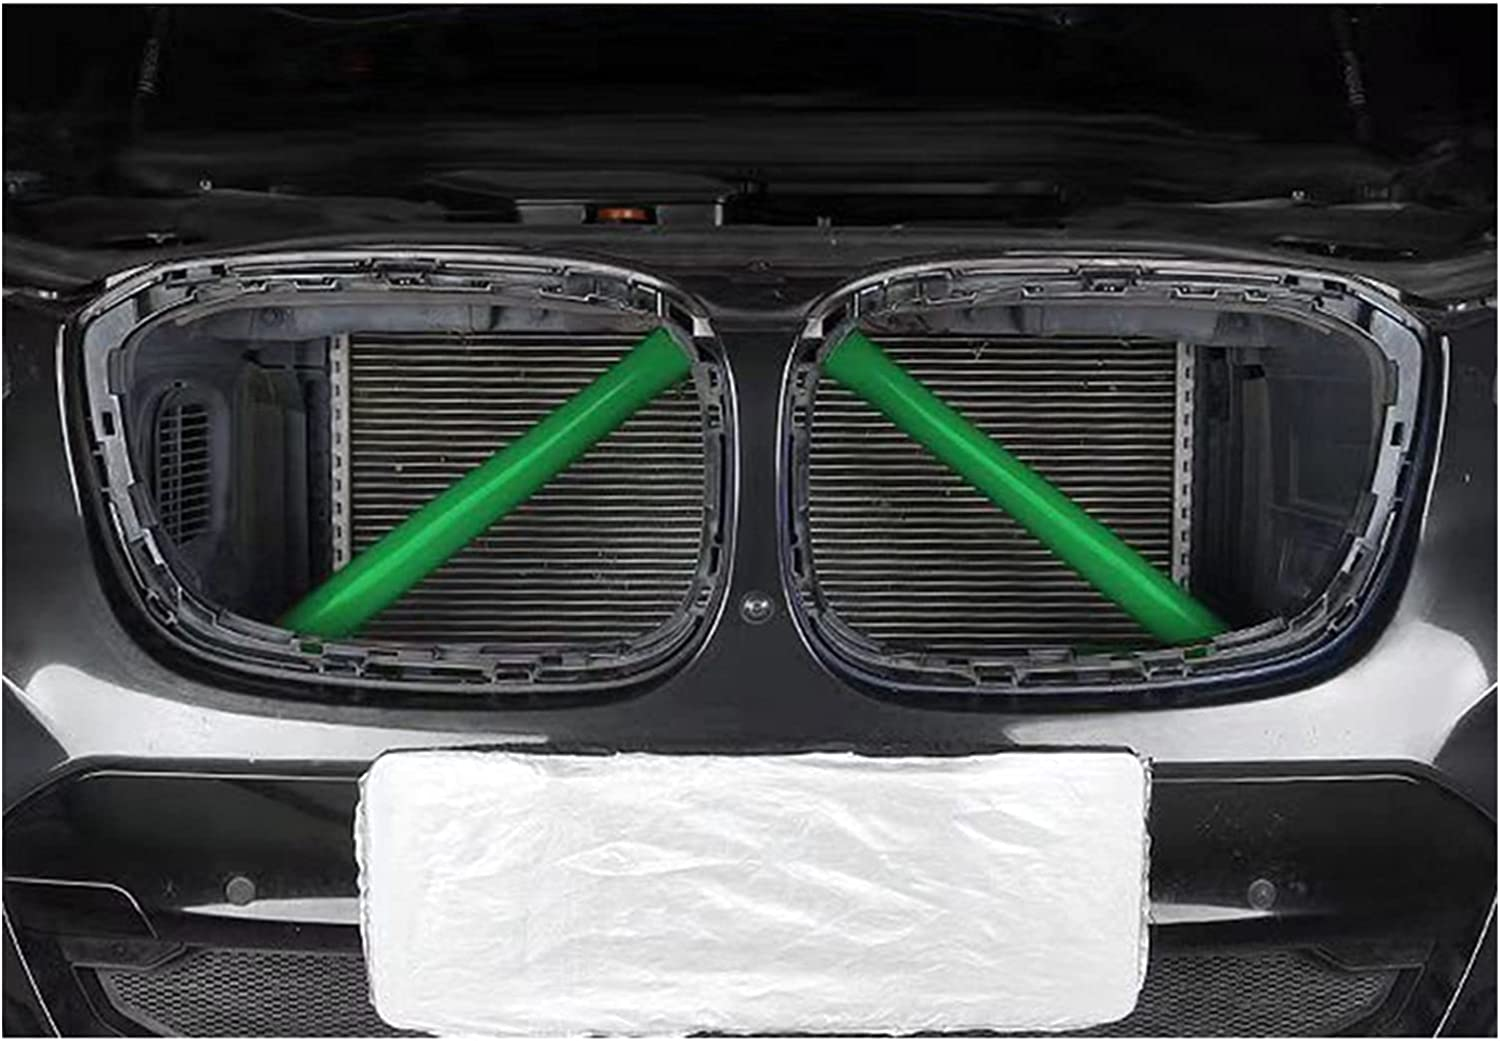 KAORI TAO Dealing full price reduction Front Grille Trim Regular dealer Strips Fit Frame Cover for Stickers